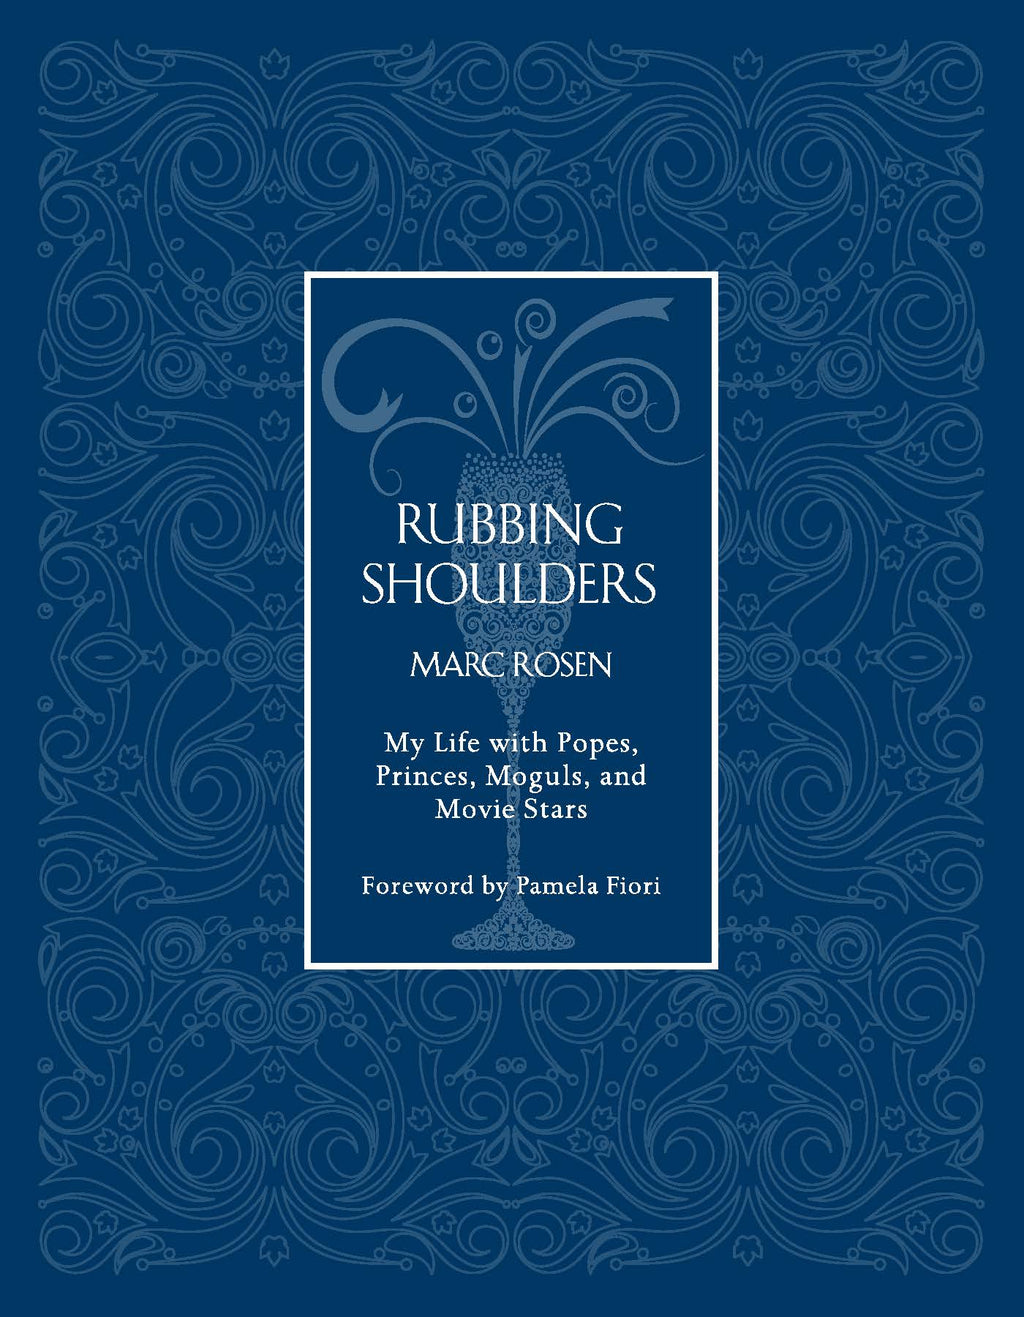 Rubbing Shoulders: My Life with Popes, Princes, Moguls, and Movie Stars